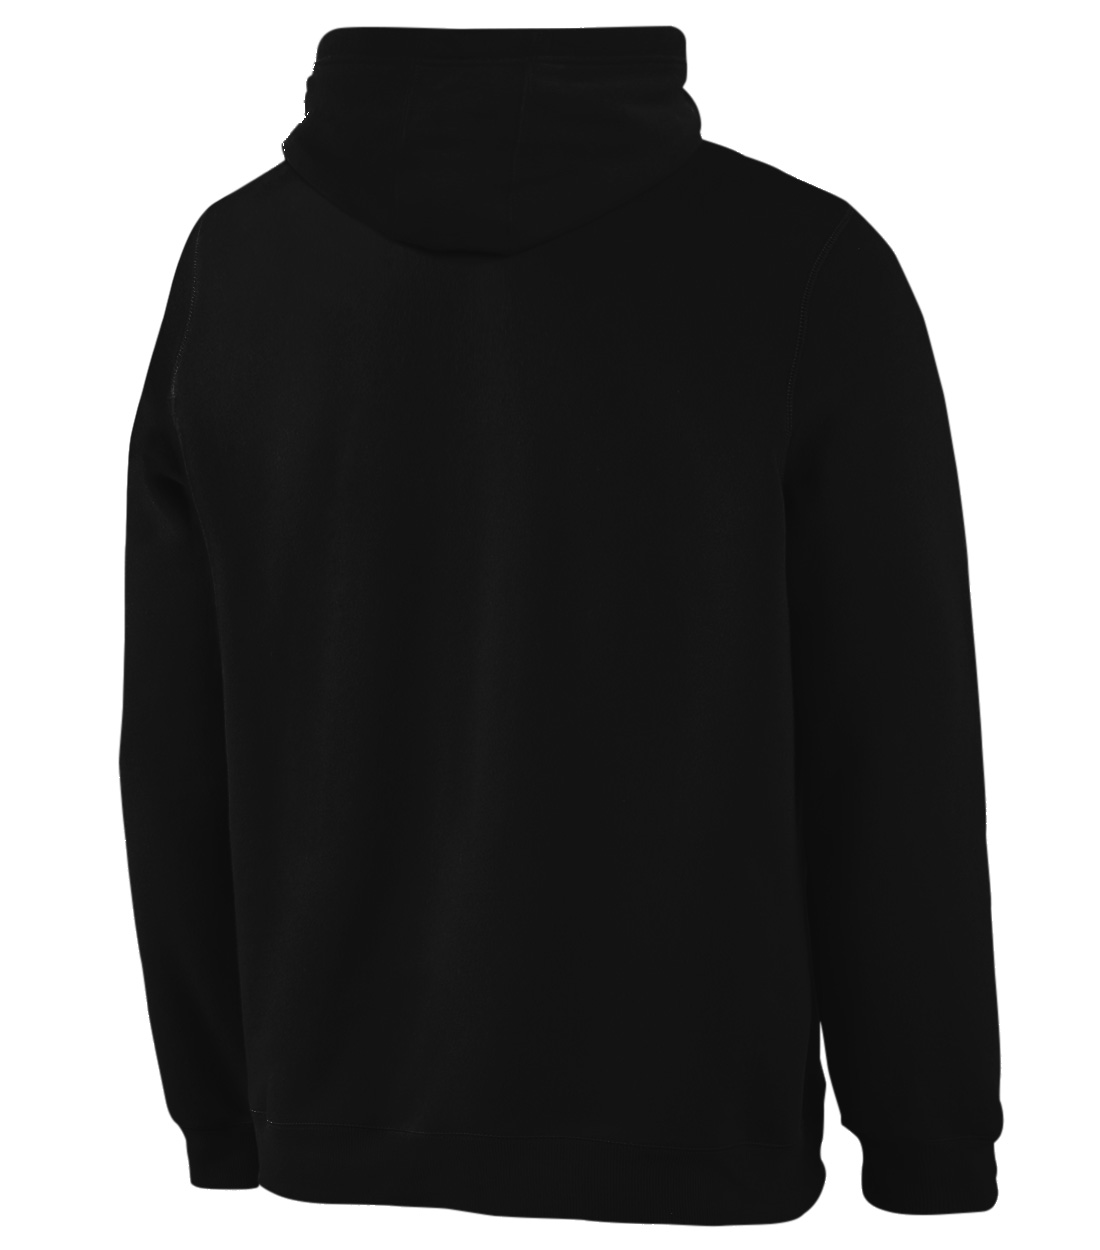 Houston Rockets Hoodie (Black)